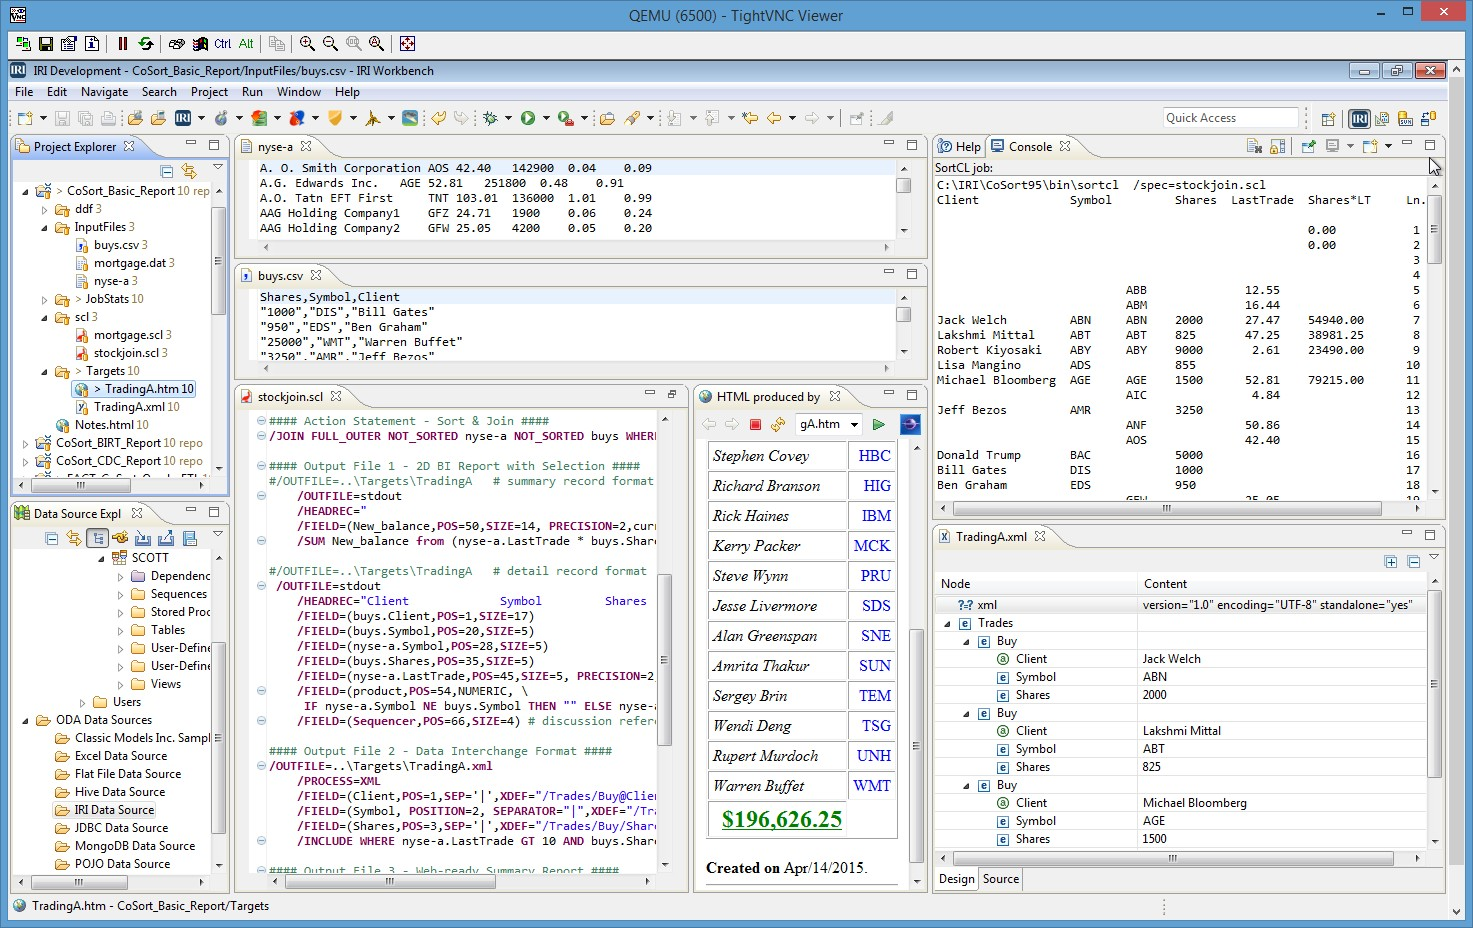 A view of the Embedded BI GUI